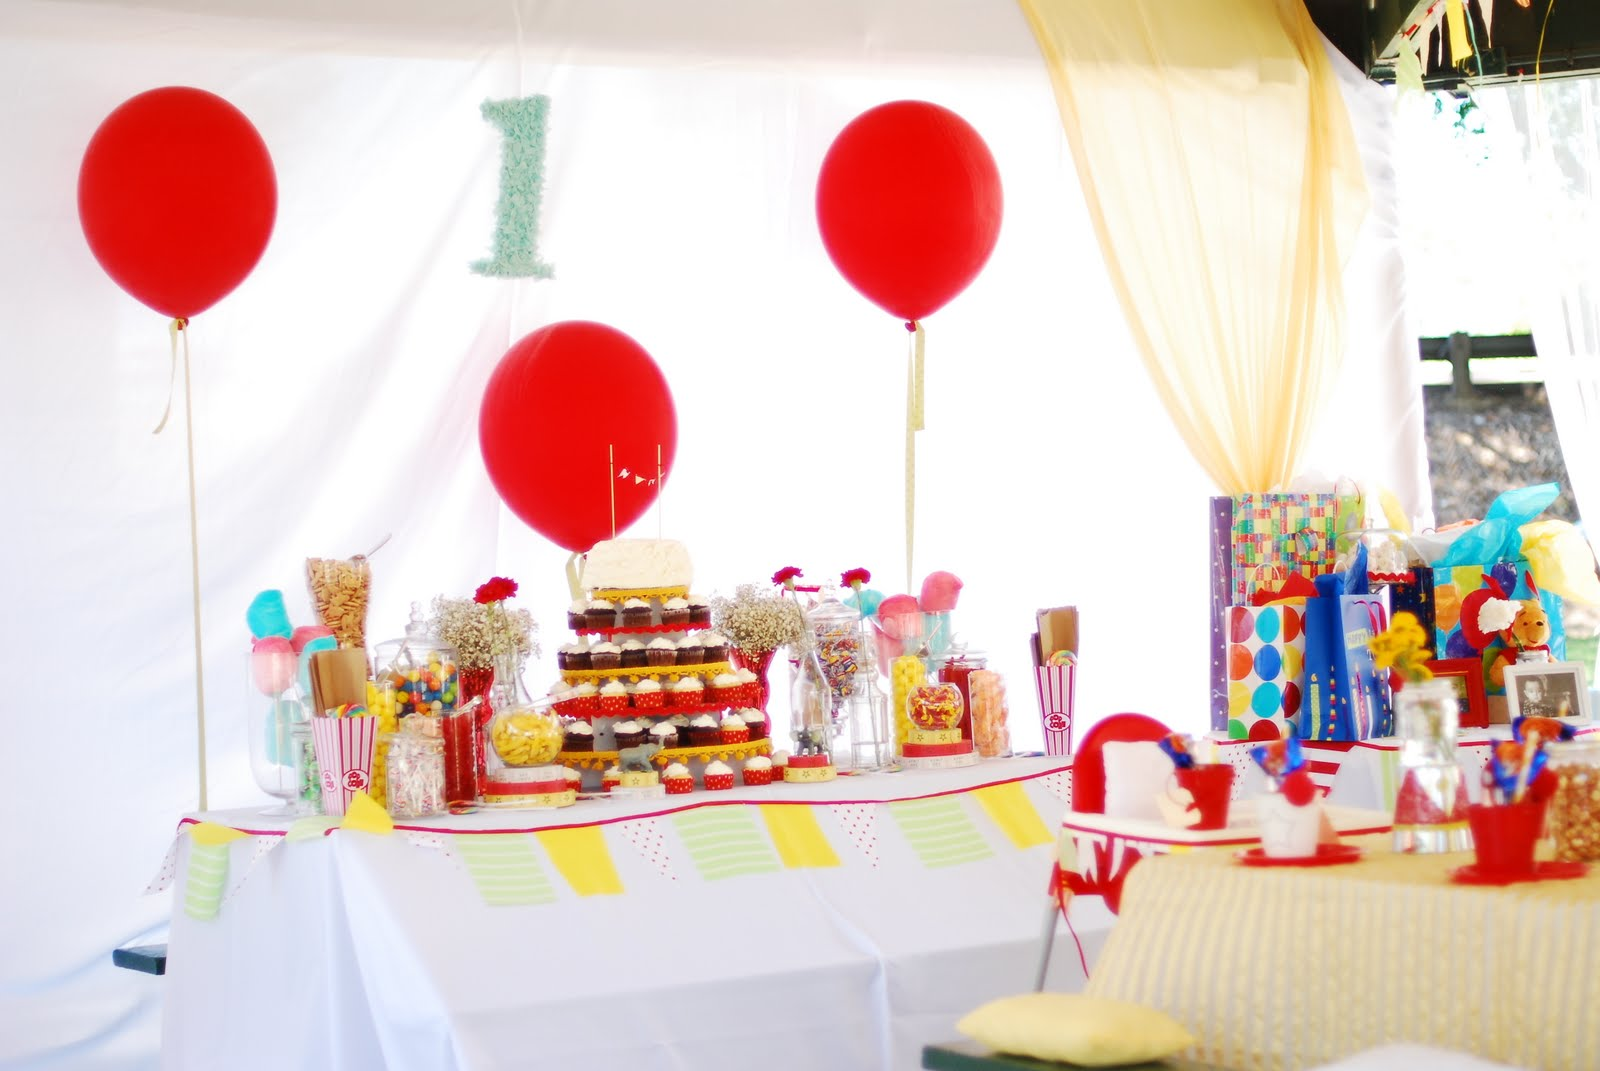 Whimsy & Wise Events: Wisely Planned Birthdays: Cortez\'s Circus Carnival